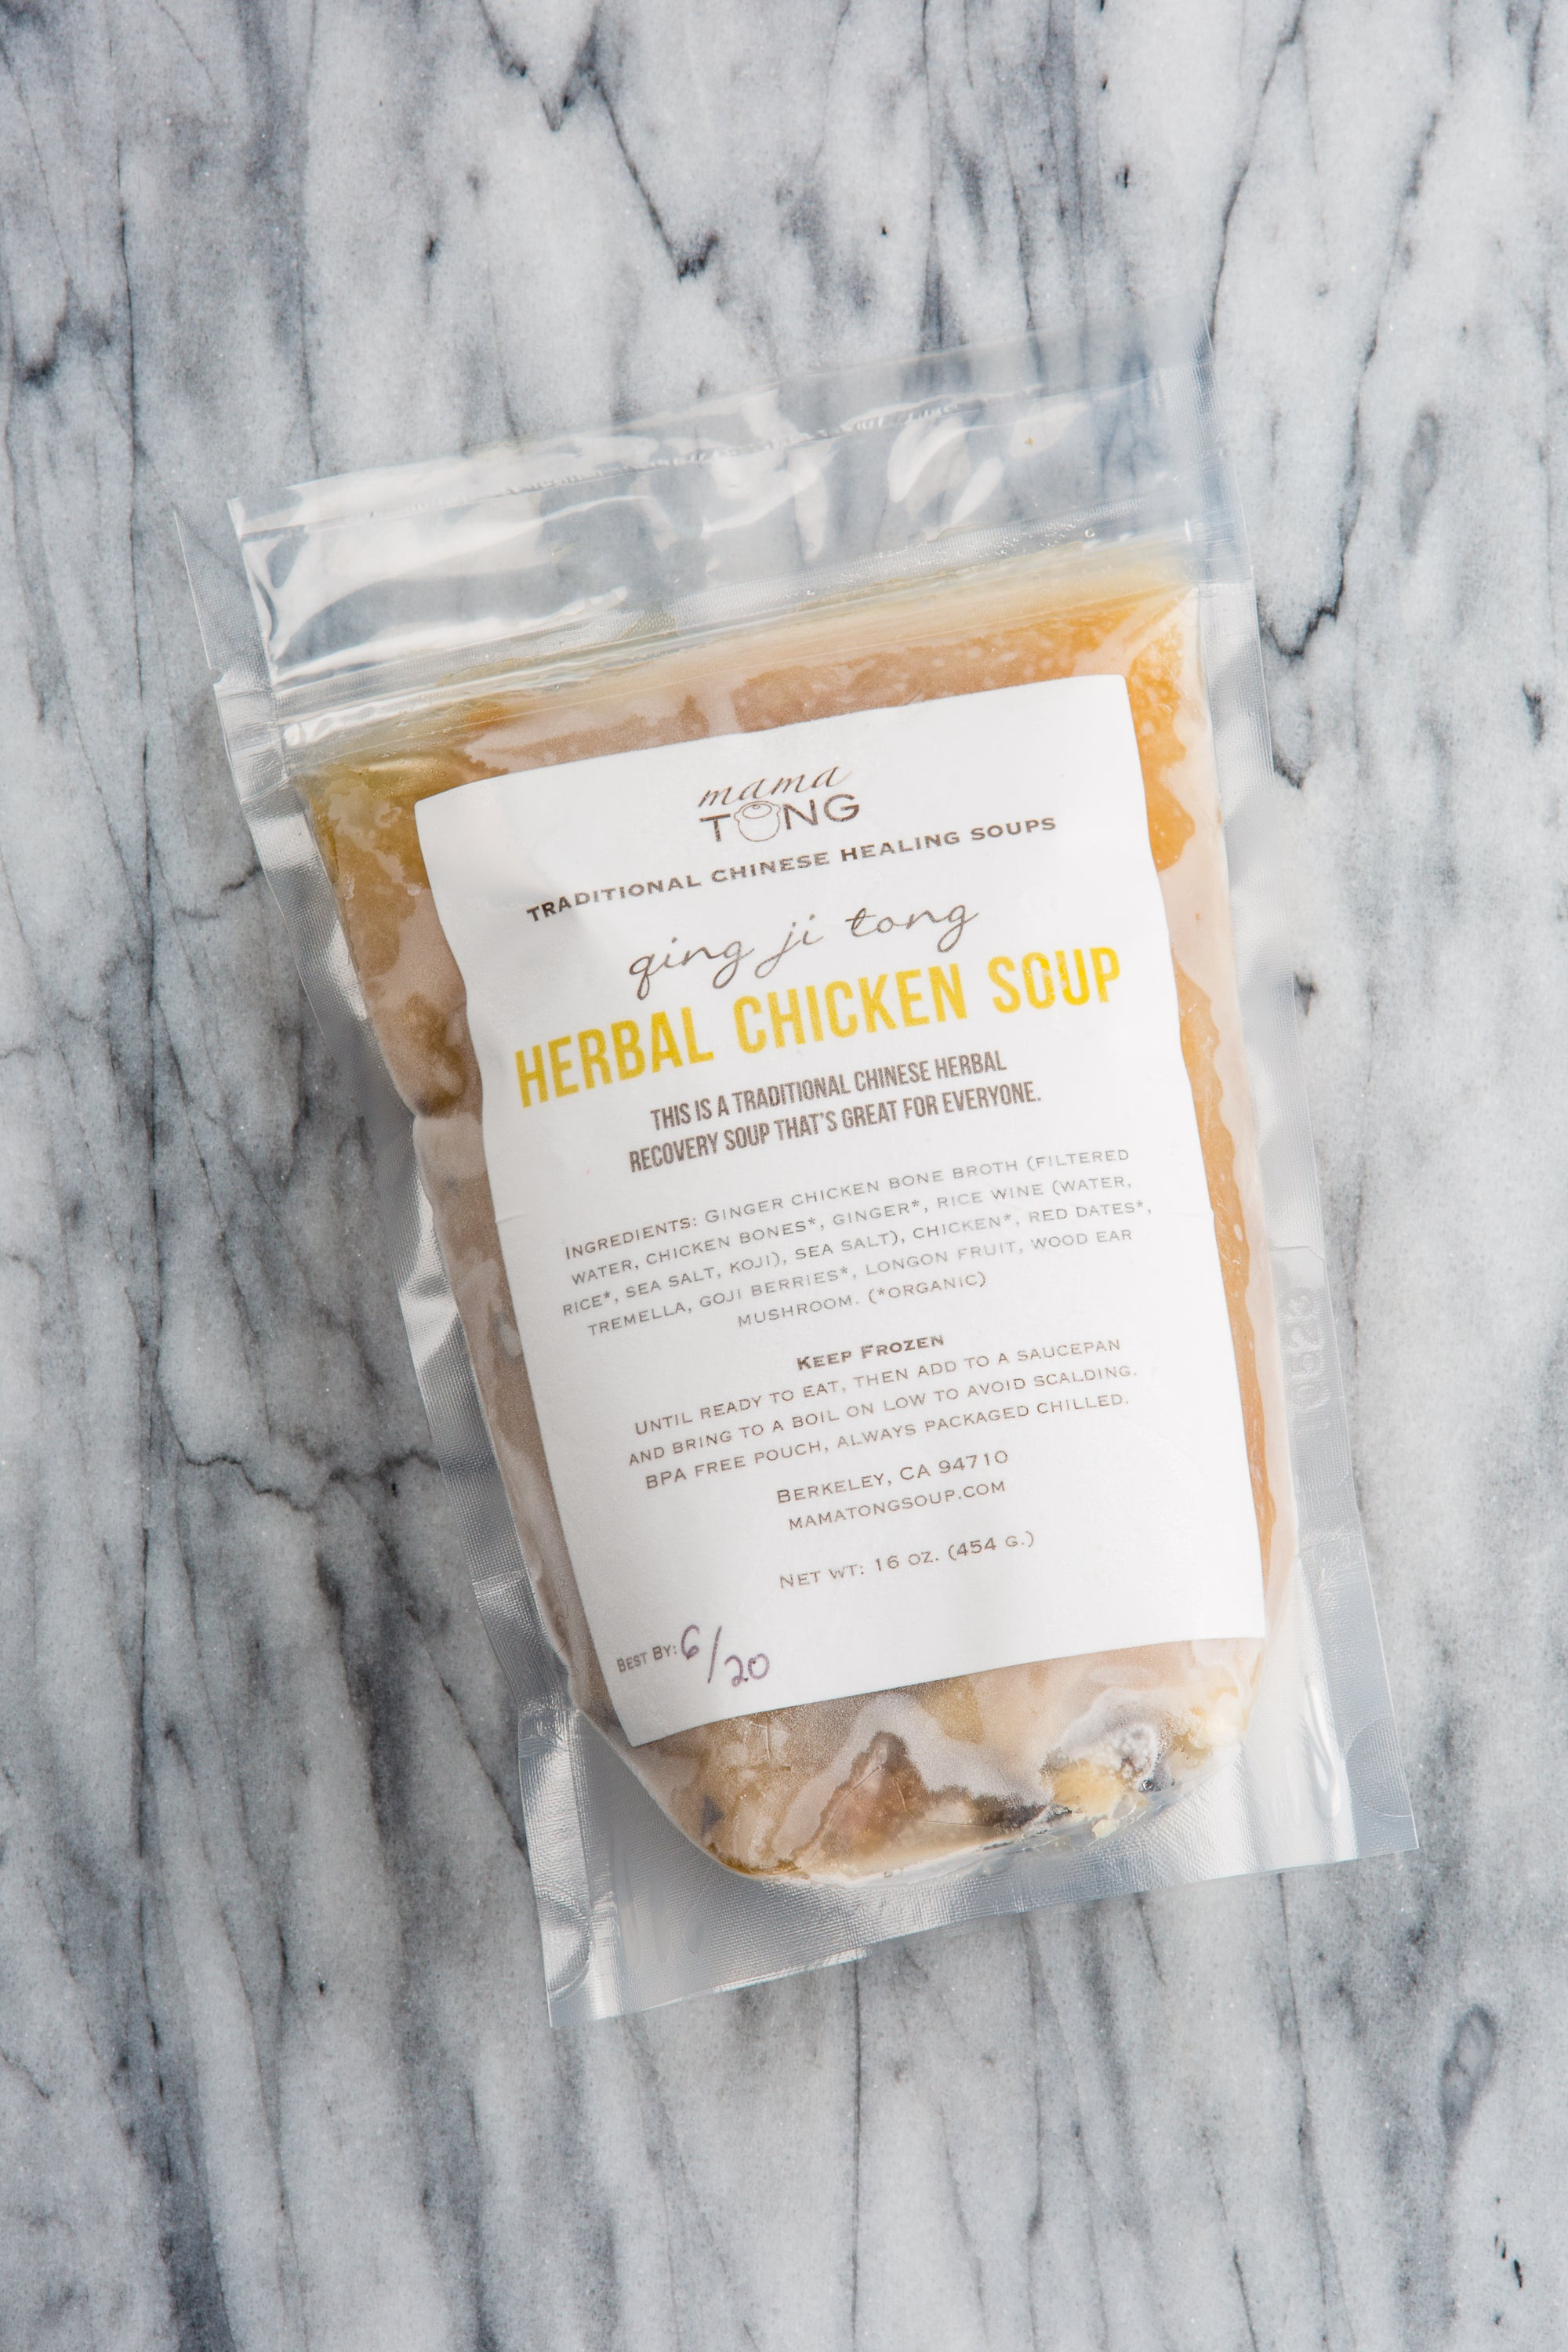 Herbal Chicken Soup: 16oz